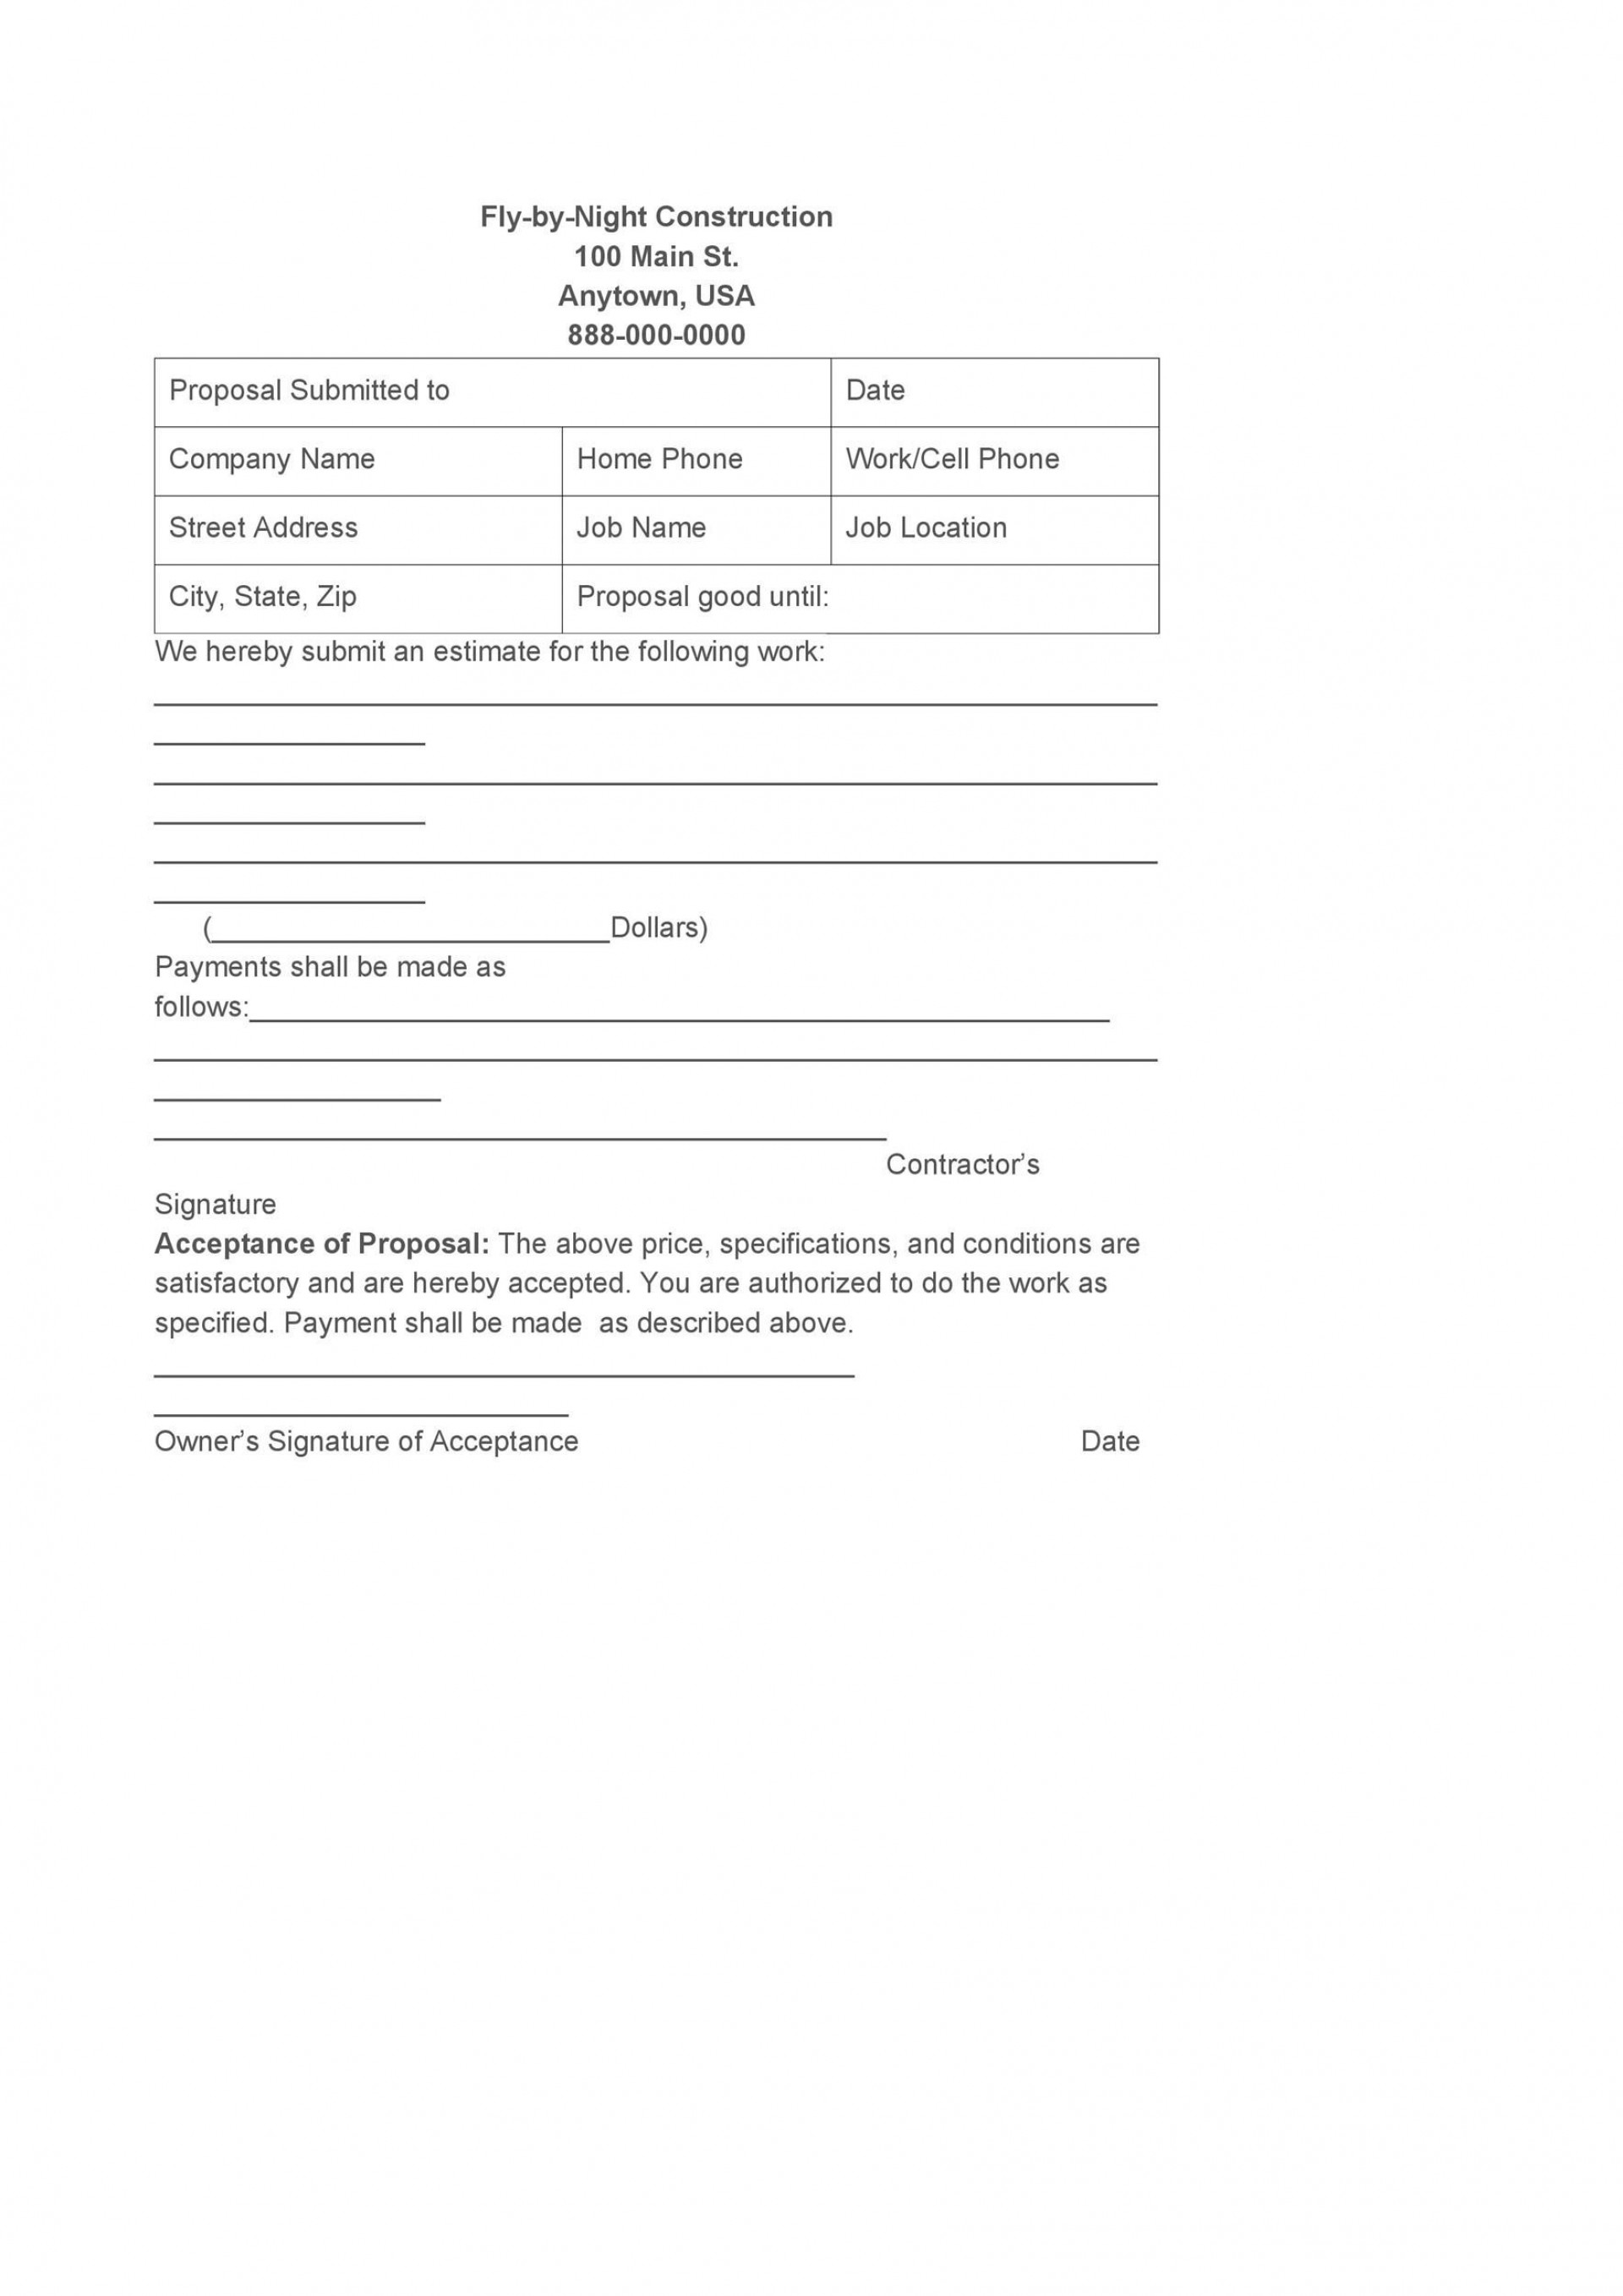 006 Formidable Contractor Proposal Template Pdf Sample  Construction Bid Upwork Free1920